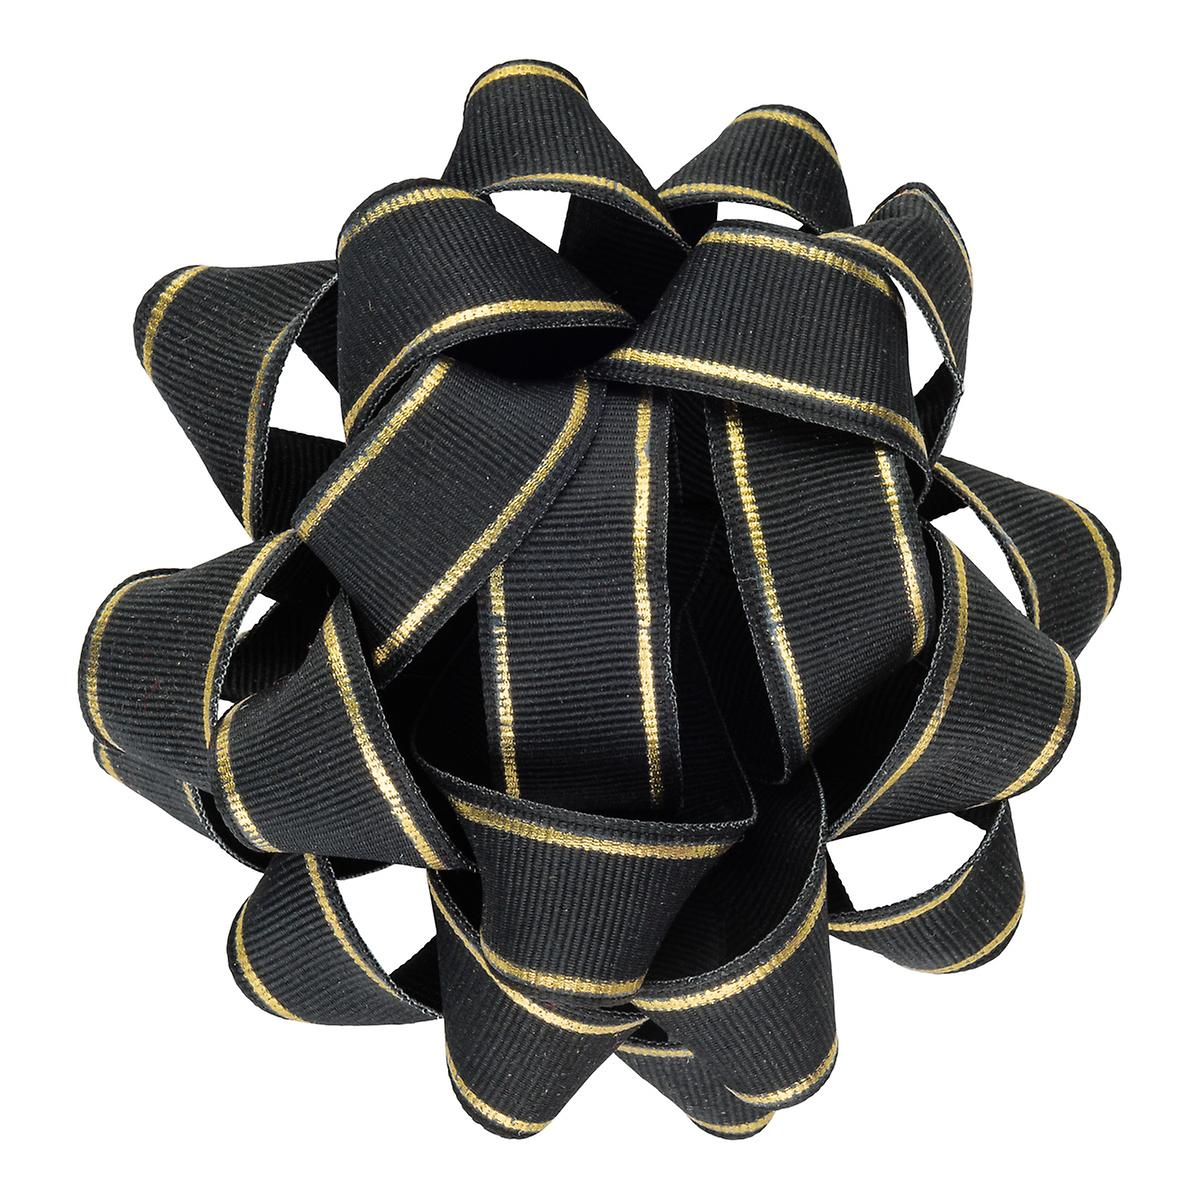 Black & Gold Grosgrain Bow